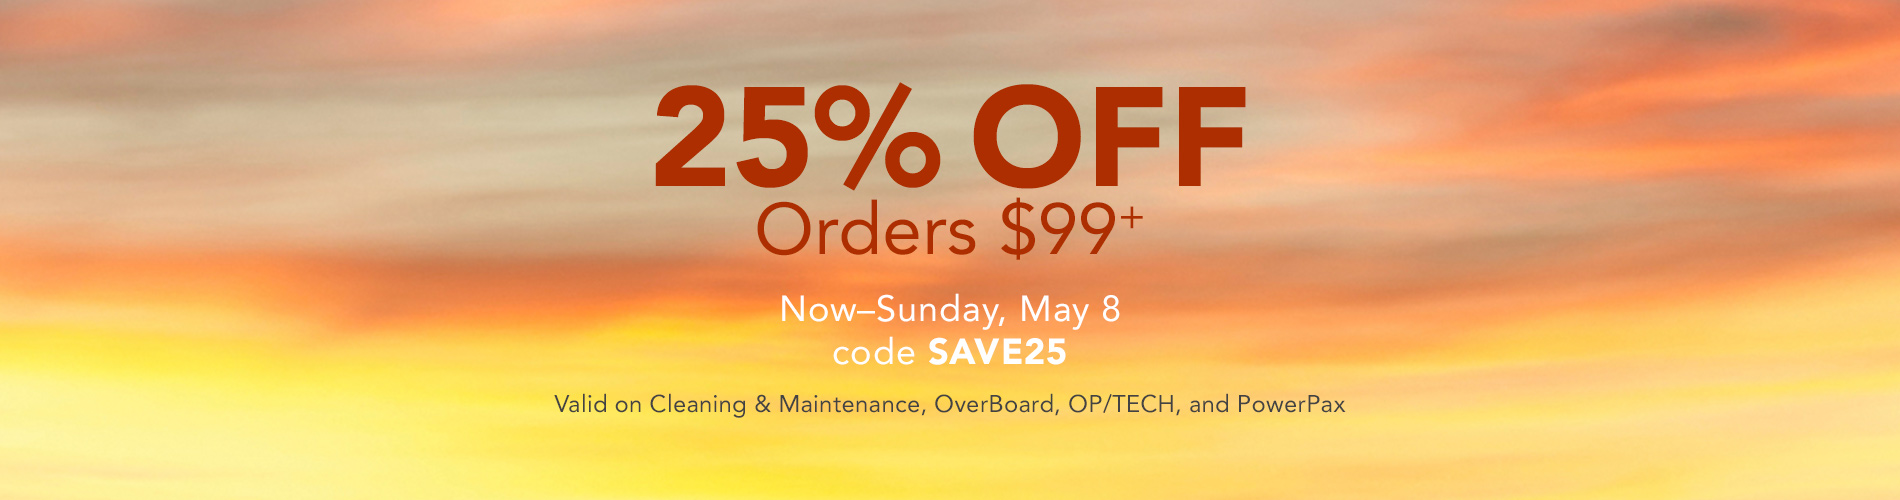 25% Off Orders $99+ Now through Sunday, May 8. Code SAVE25. Valid on Cleaning & Maintenance, OverBoard, OP/TECH, and PowerPax